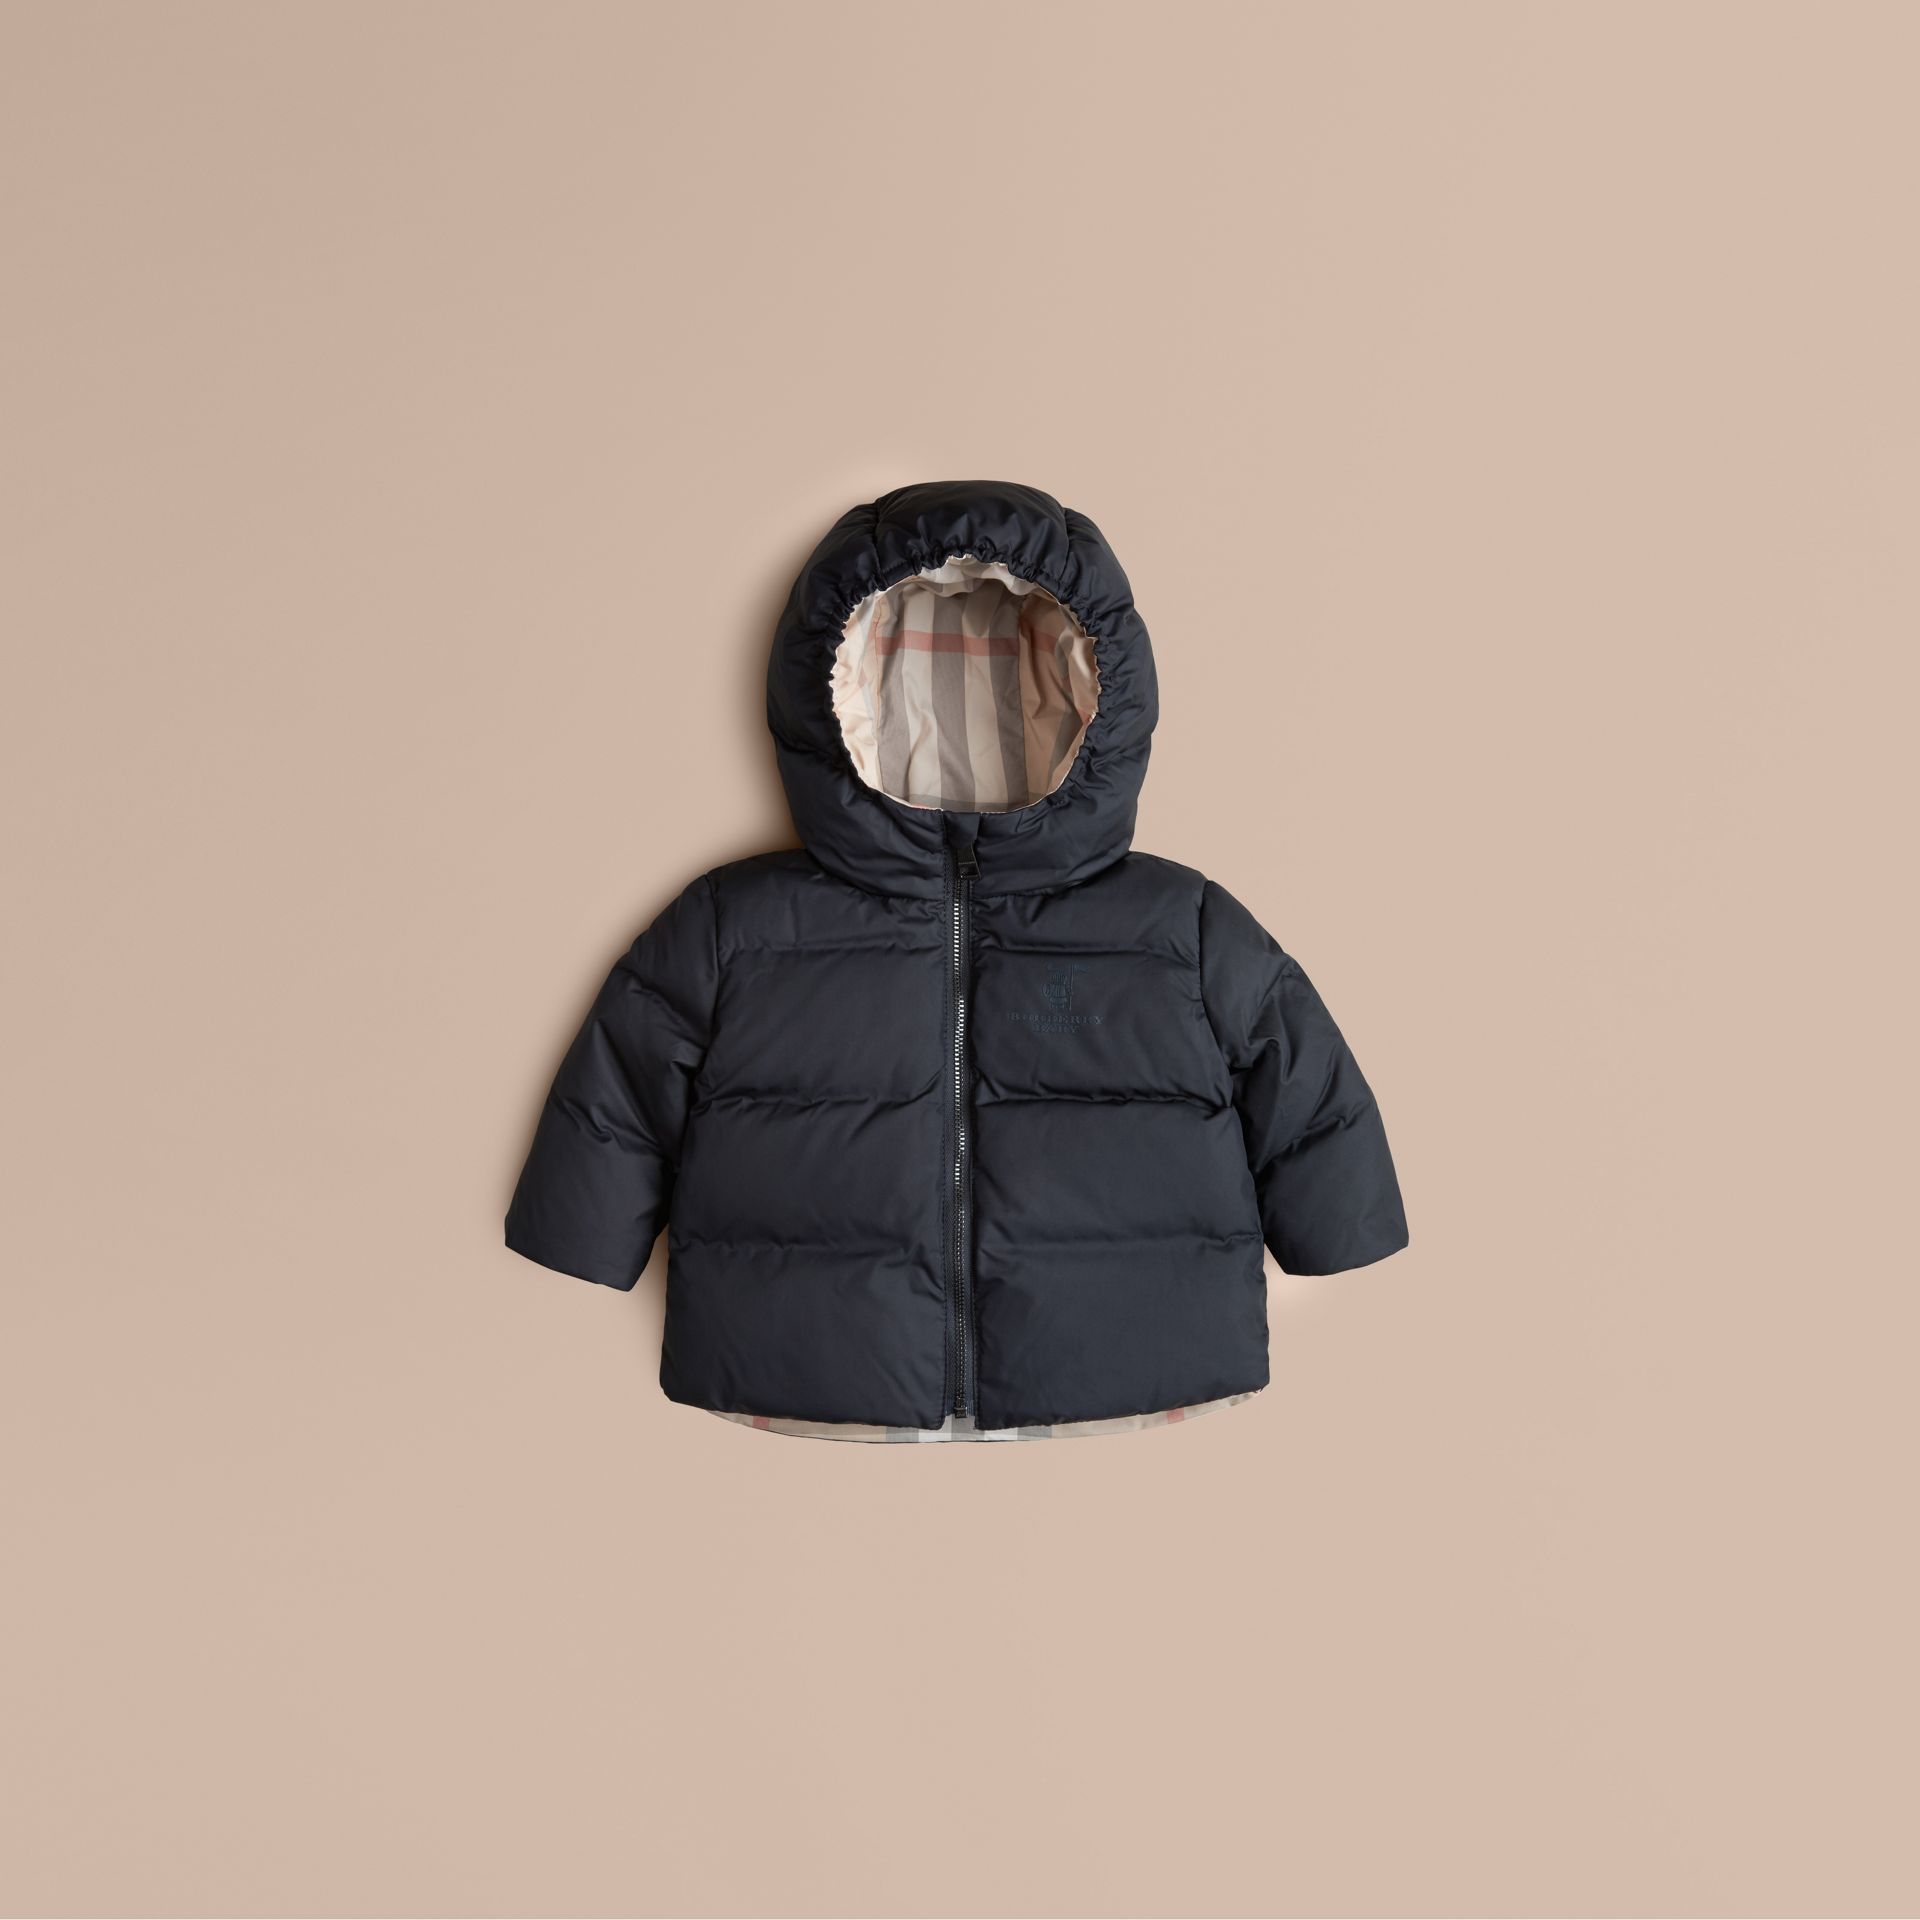 Navy Check-Lined Puffer Jacket Navy - gallery image 1